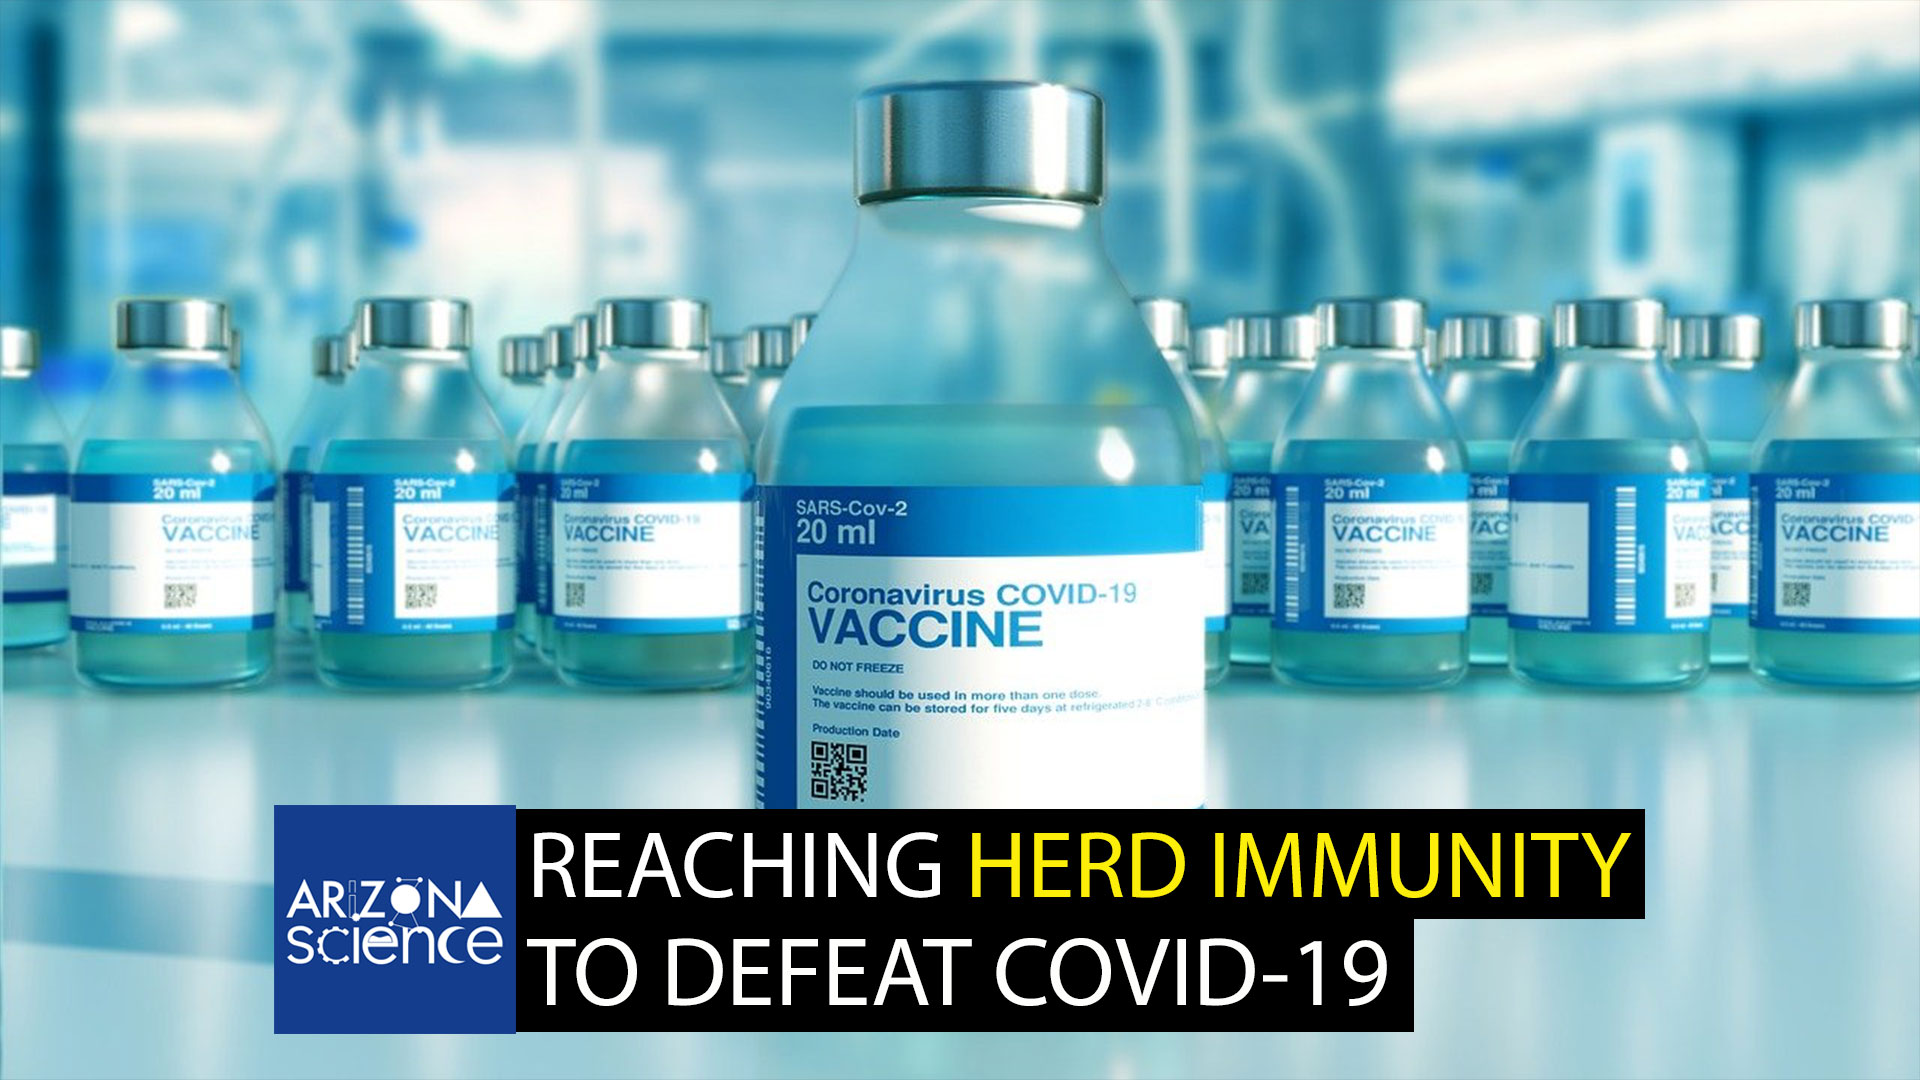 AZSCI 270 Reaching herd immunity